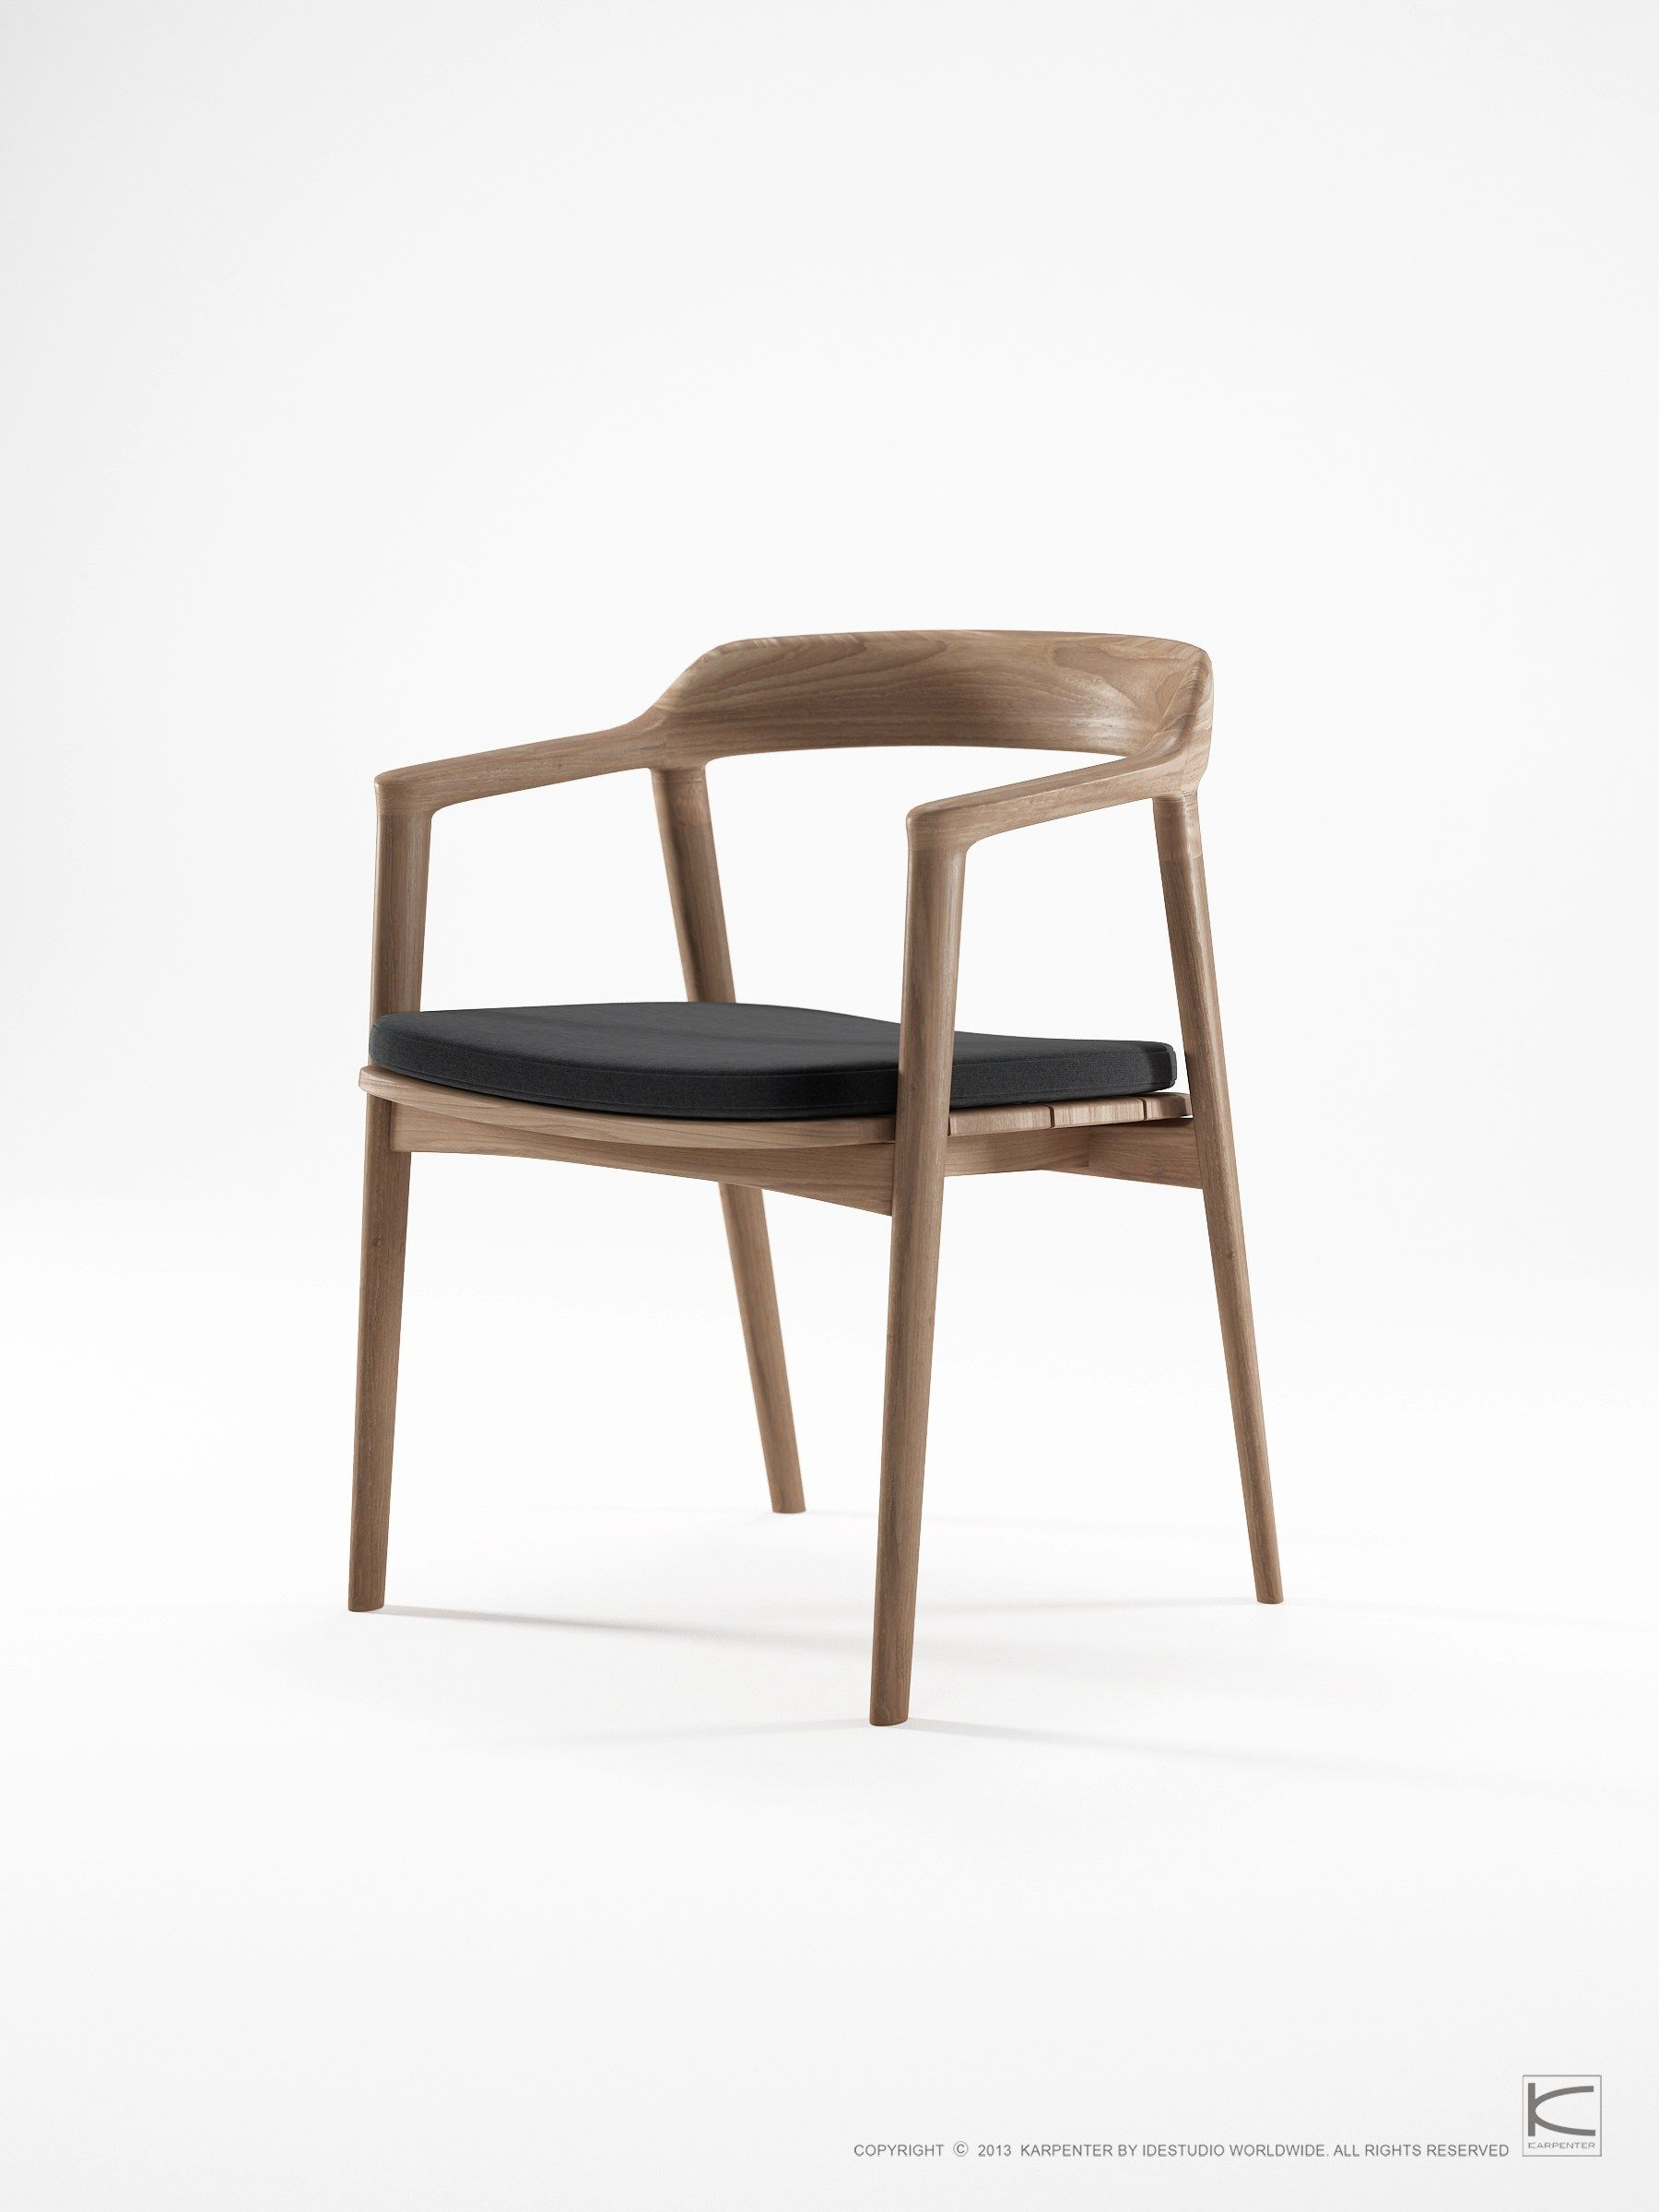 Sedia Karol Wood Download The Catalogue And Request Prices Of Grasshopper Chair